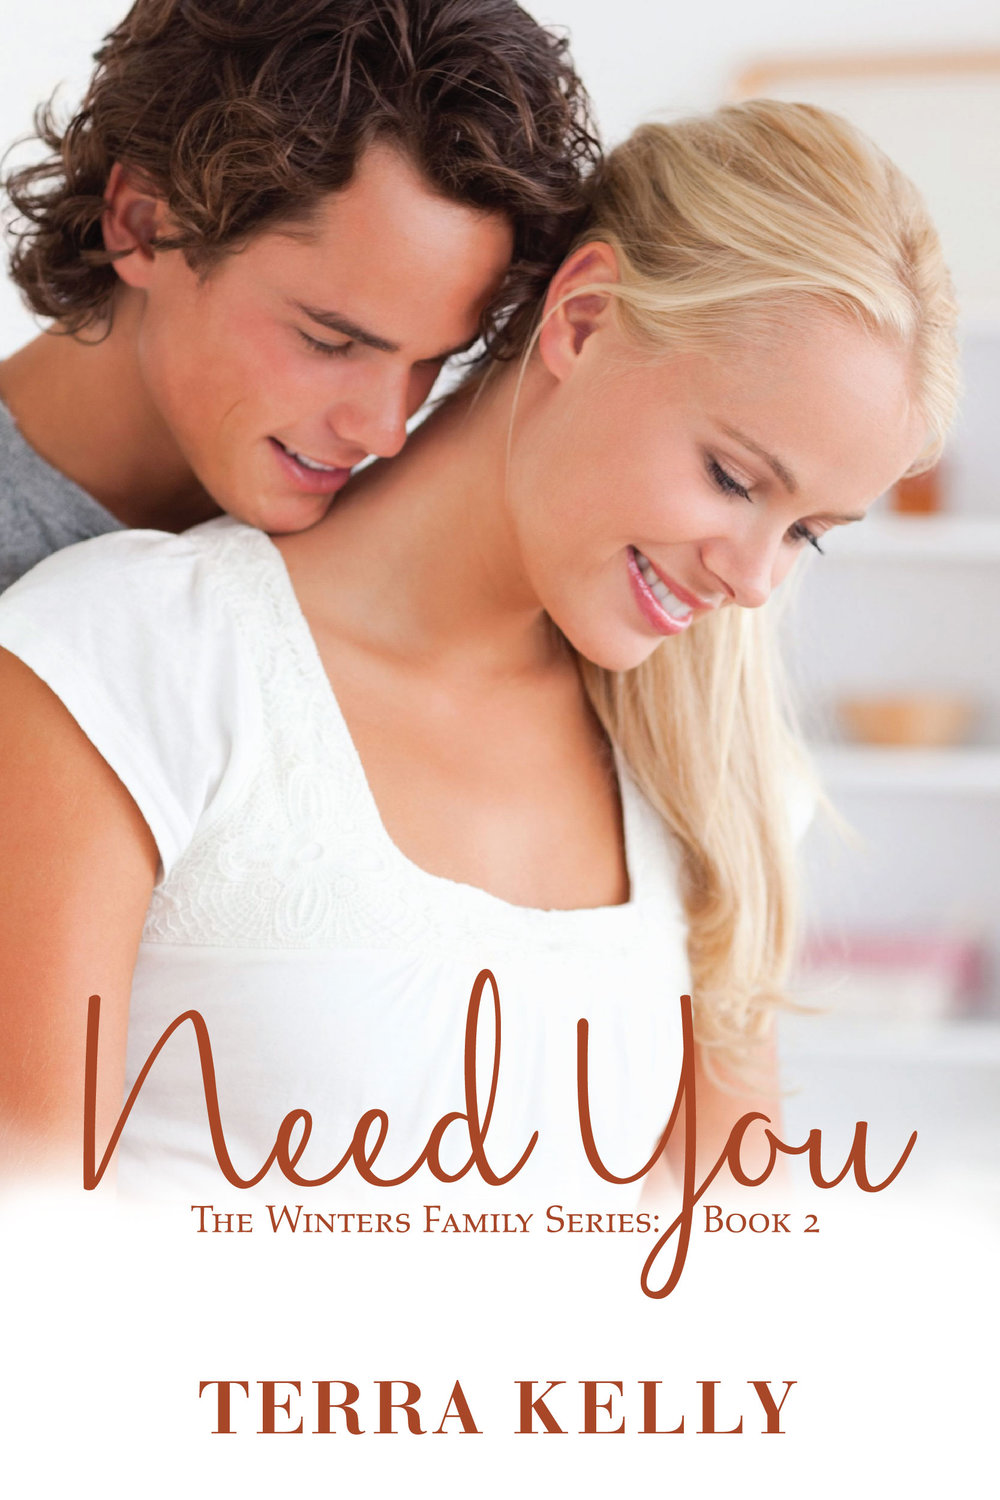 Need You - Terra Kelly    Alyssa believed she could only love one man, the man she lost. Can Alex convince Alyssa that everyone deserves a second chance?